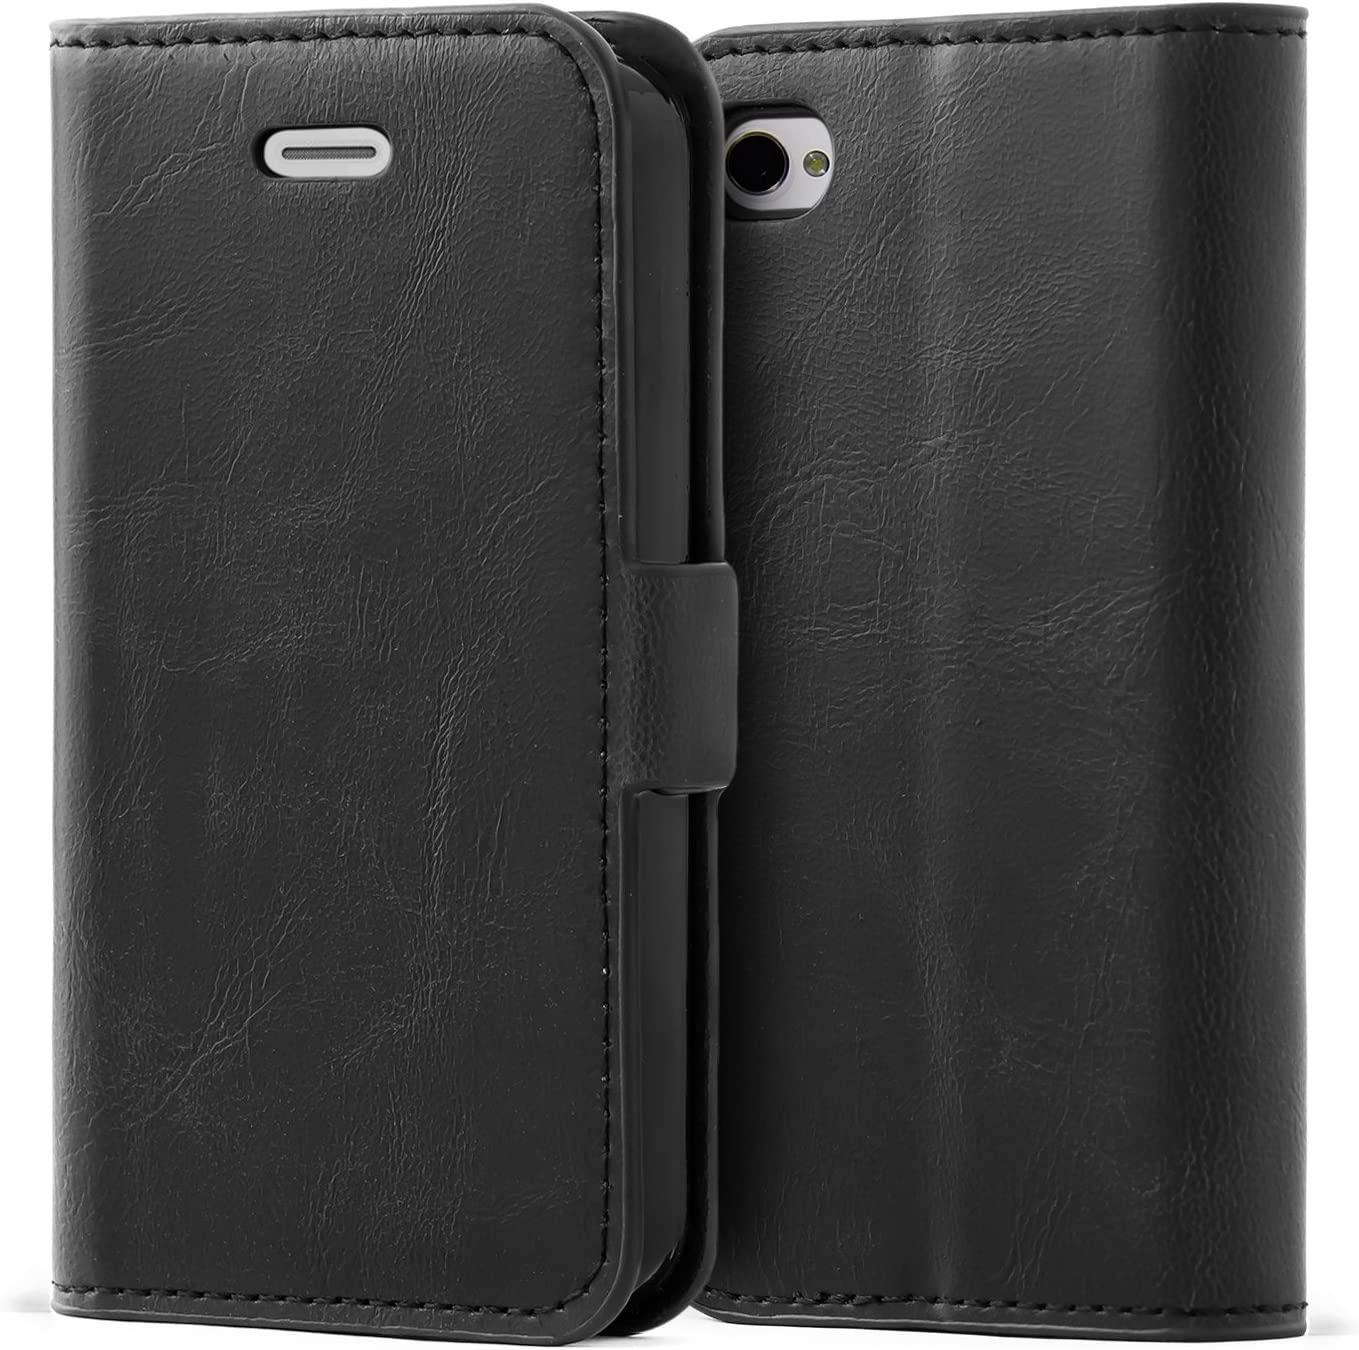 Mulbess iPhone 4s Wallet Case, Flip Leather Phone Case with Kickstand and Card Holder for iPhone 4 / 4s Cover, Black